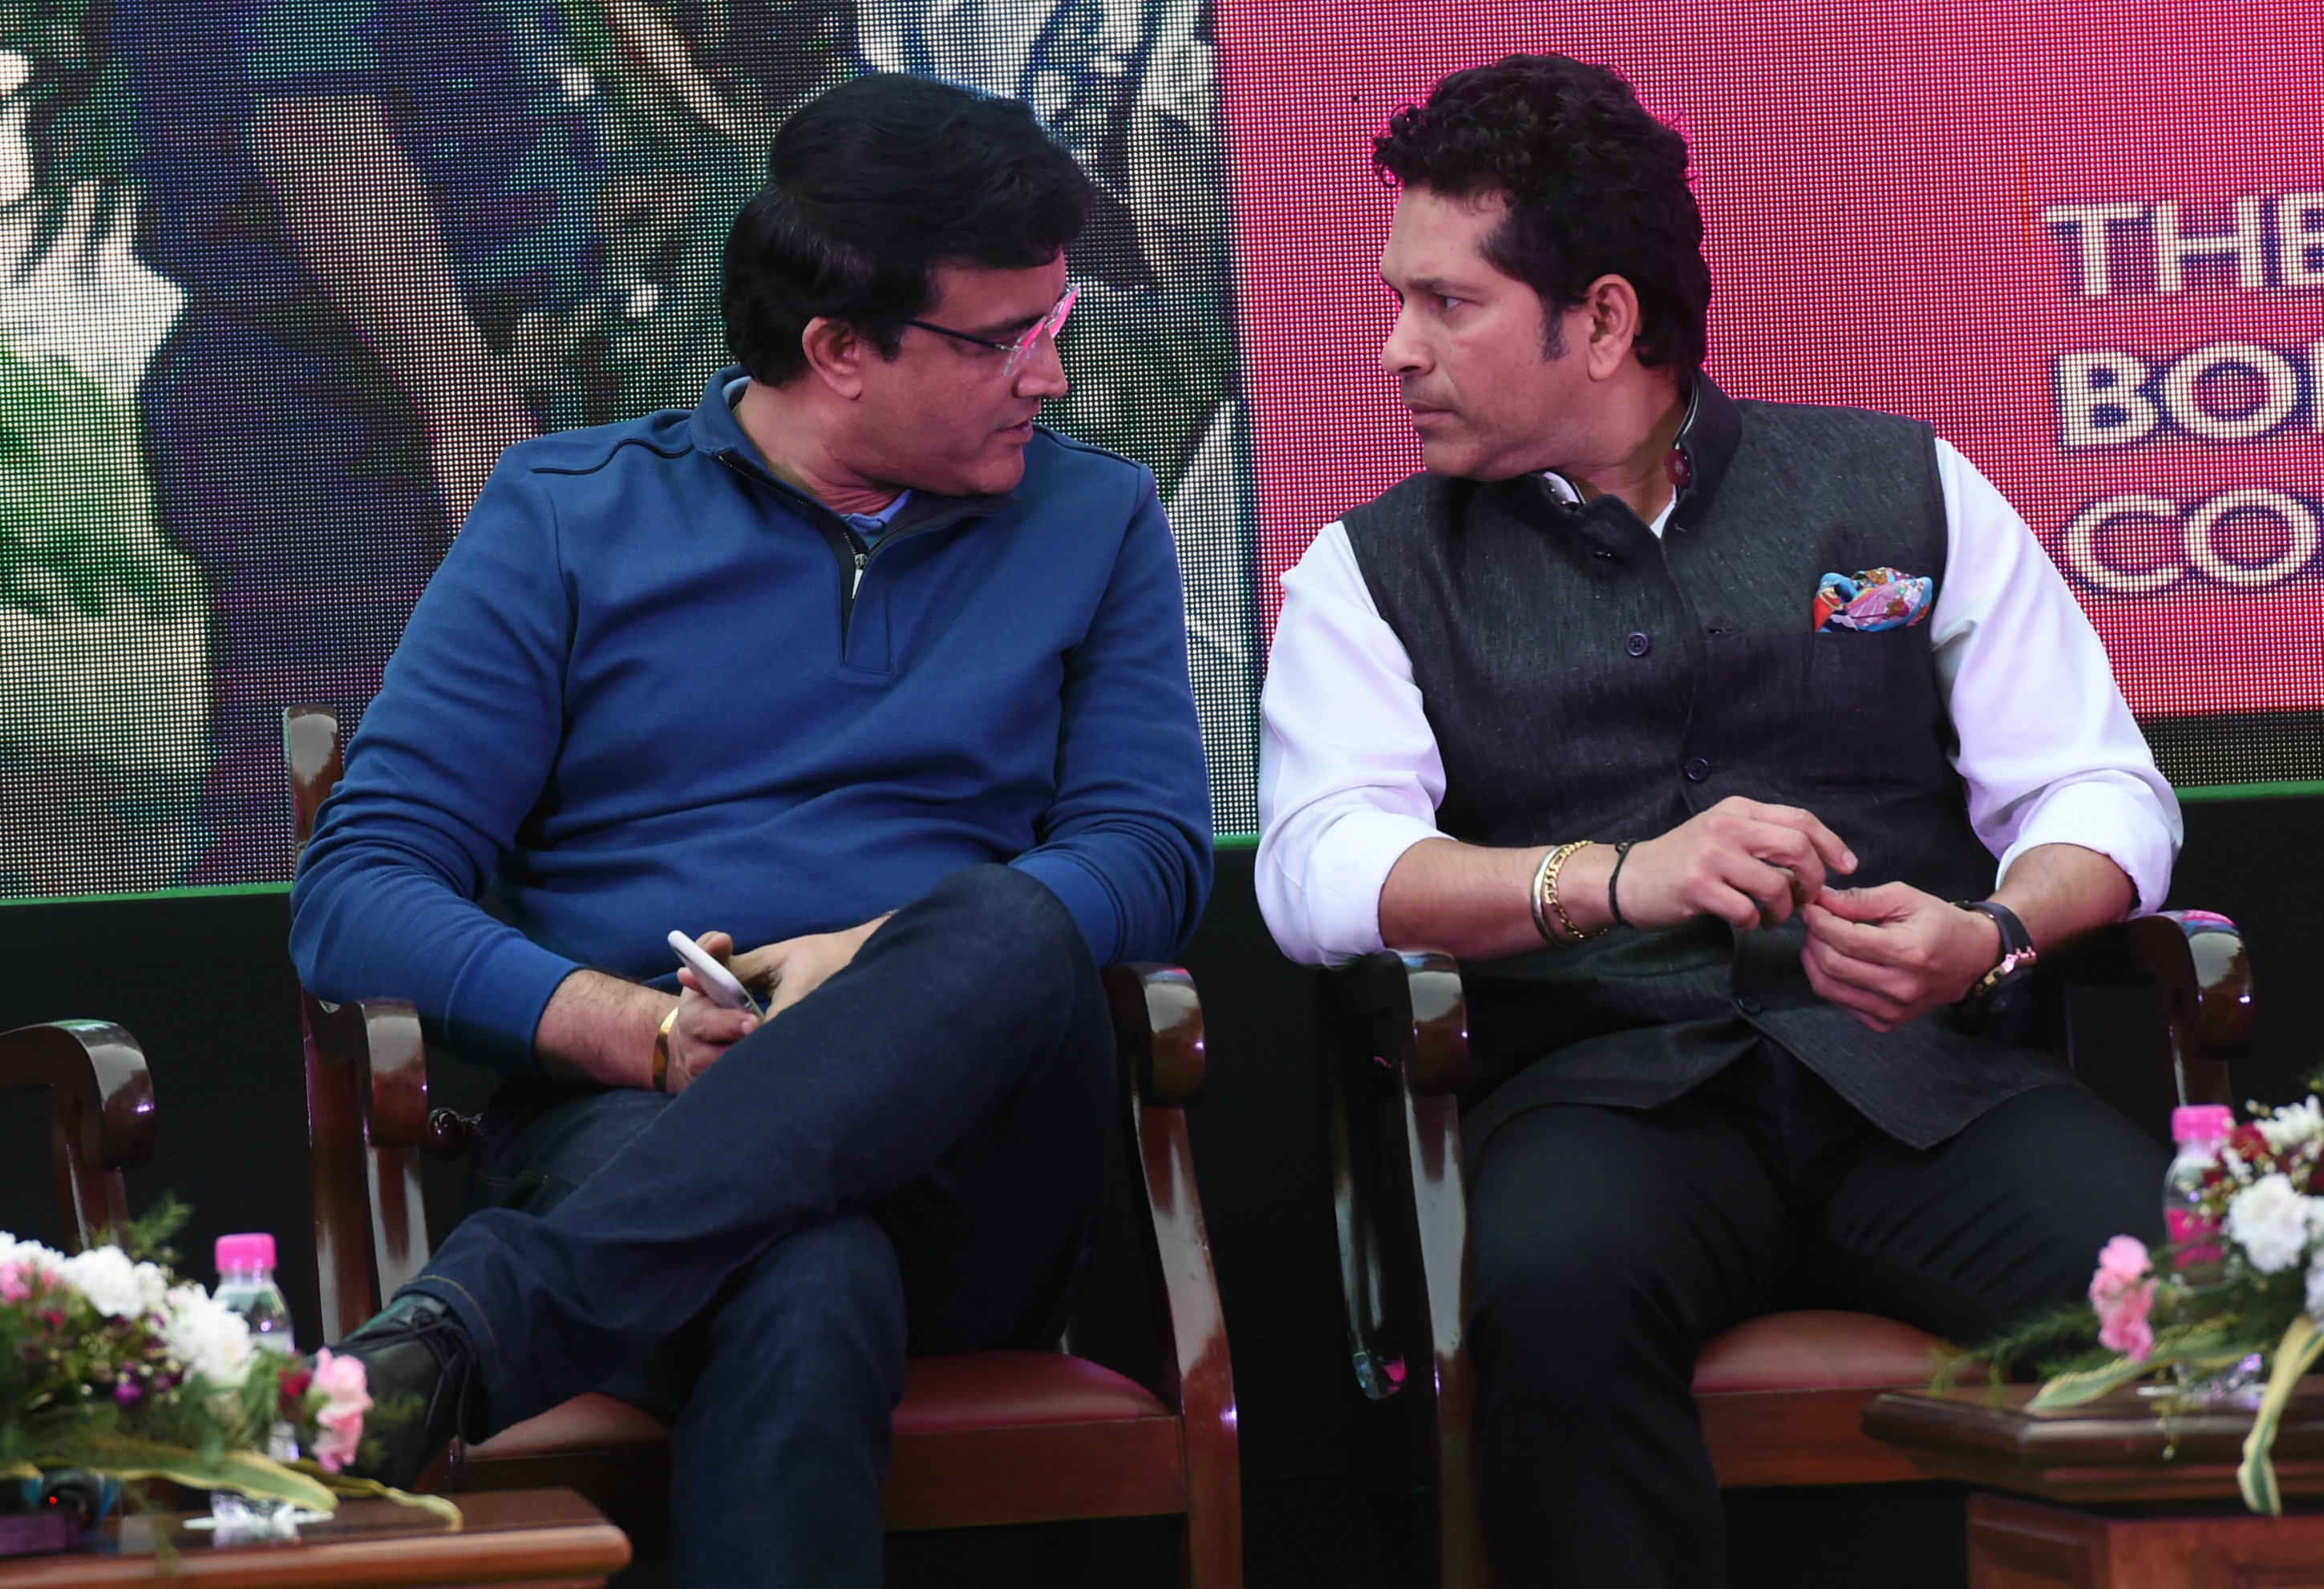 """""""The way Sourav played cricket, the way he has gone out and served the nation, I have no doubt that he will serve (as BCCI president) in the same manner, with same passion and same focus. That is what I know of him,"""" Sachin, said"""